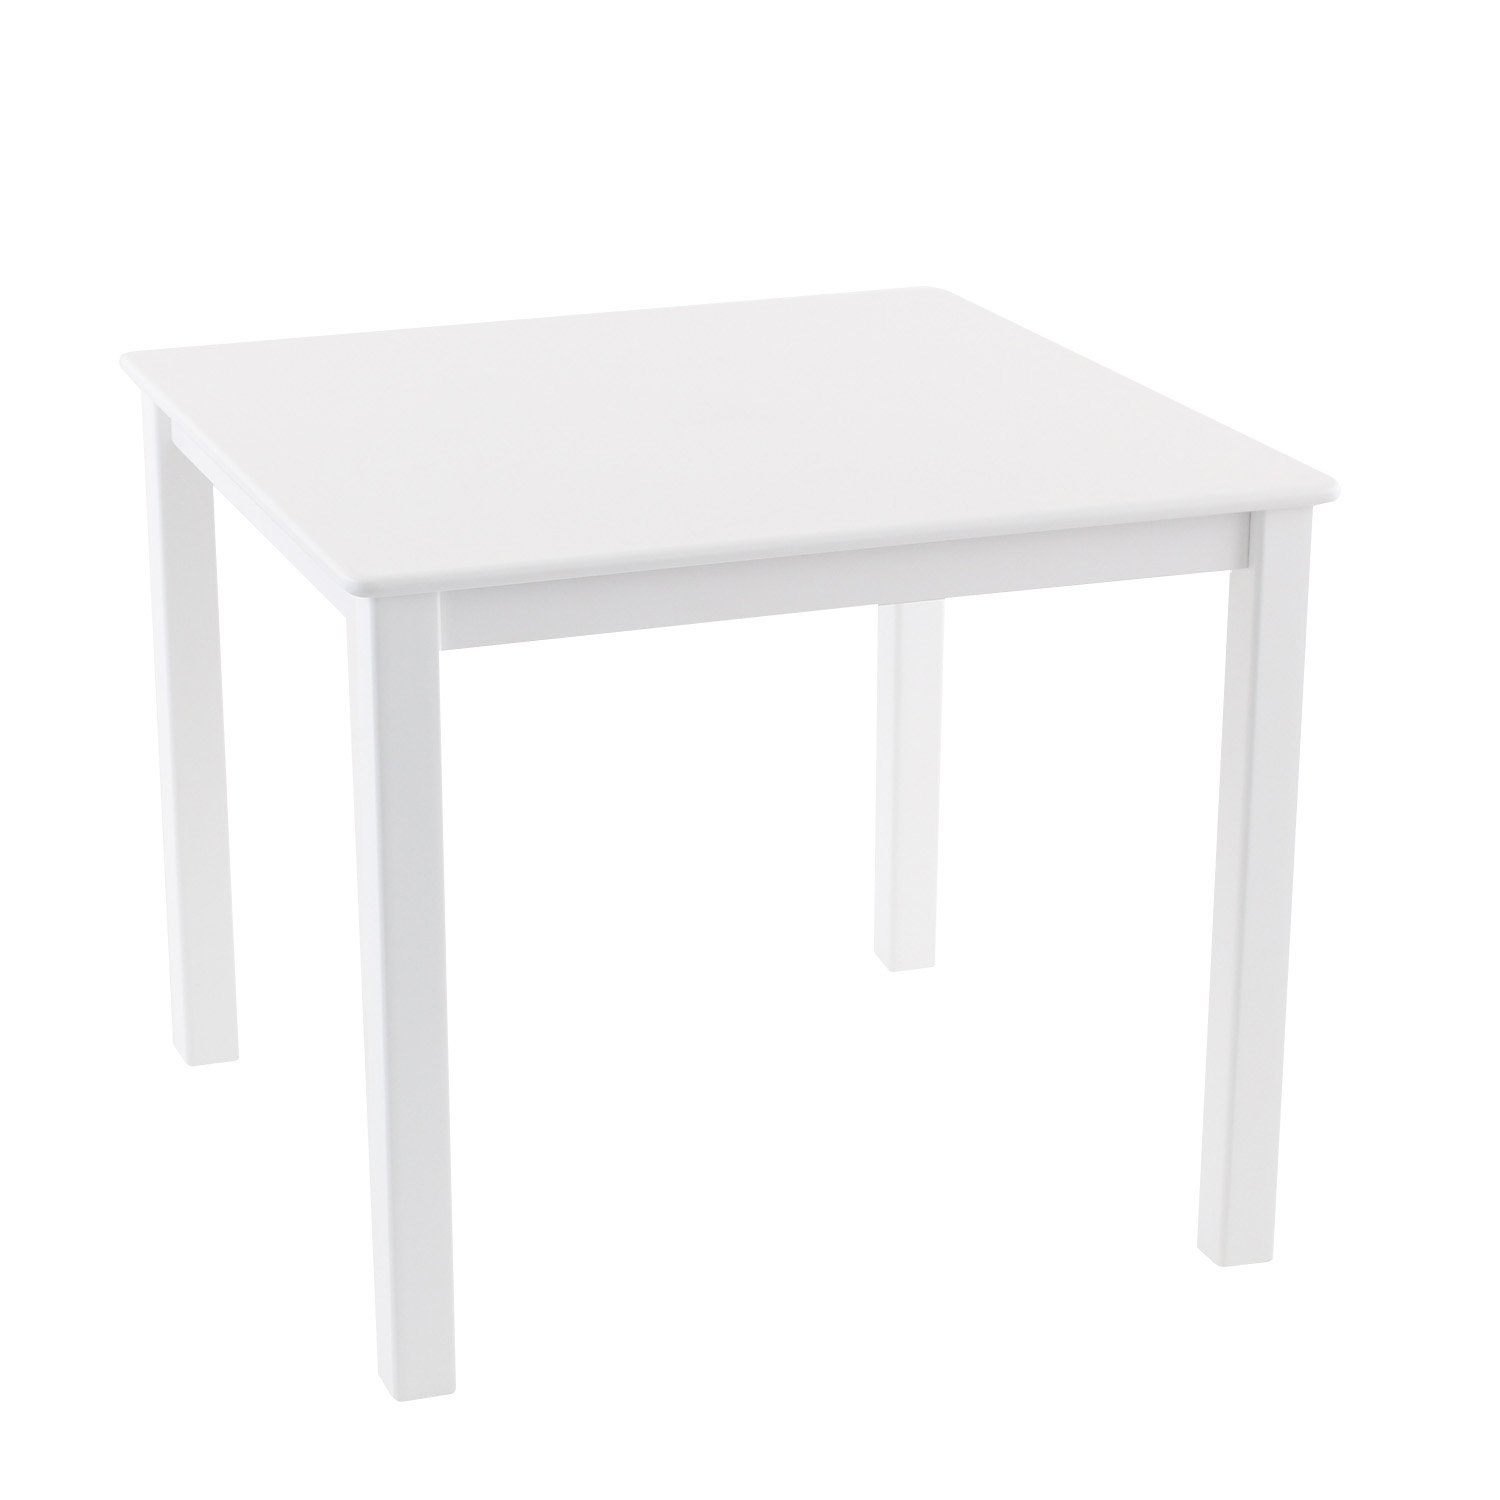 Max & Lily Natural Wood Kid and Toddler Square Table, White